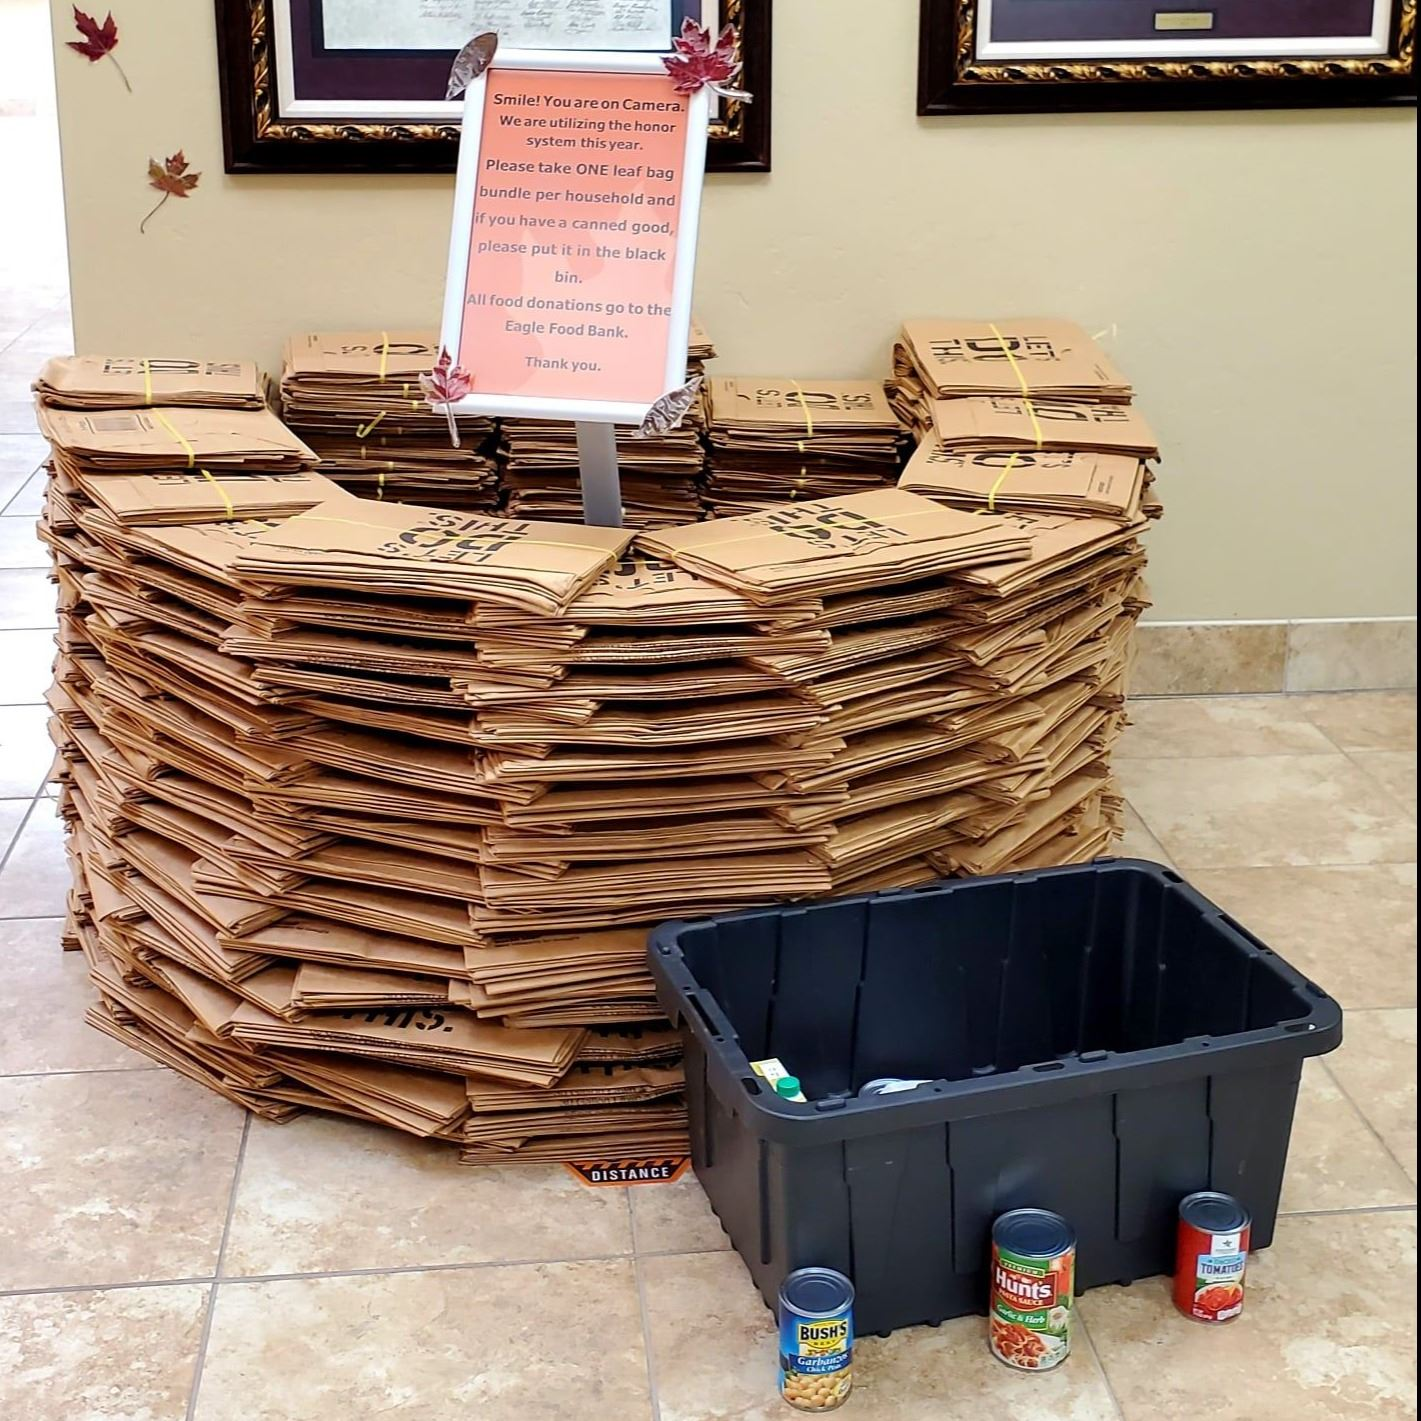 A tall stack of paper leaf bags with a canned food donation box in front of it.